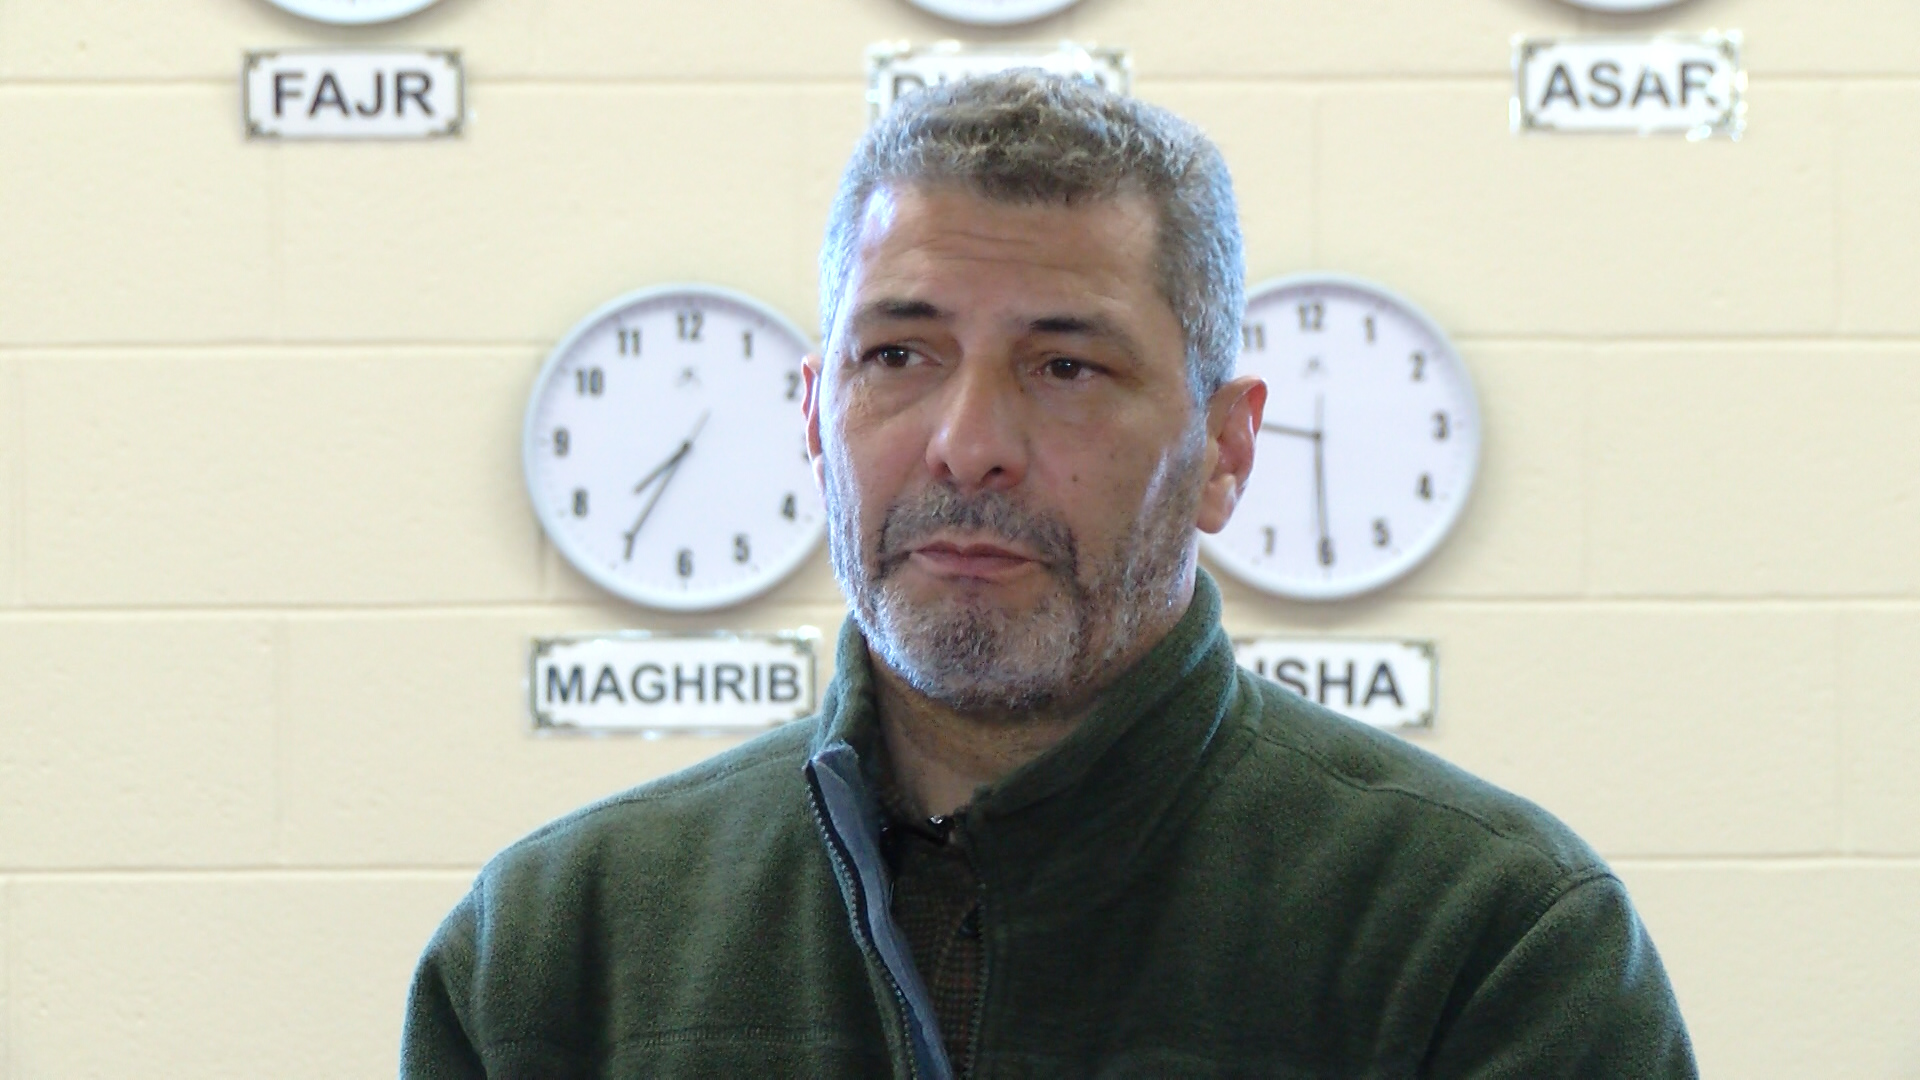 AbdelBaset Aborawi, President of Lethbridge Islamic Centre